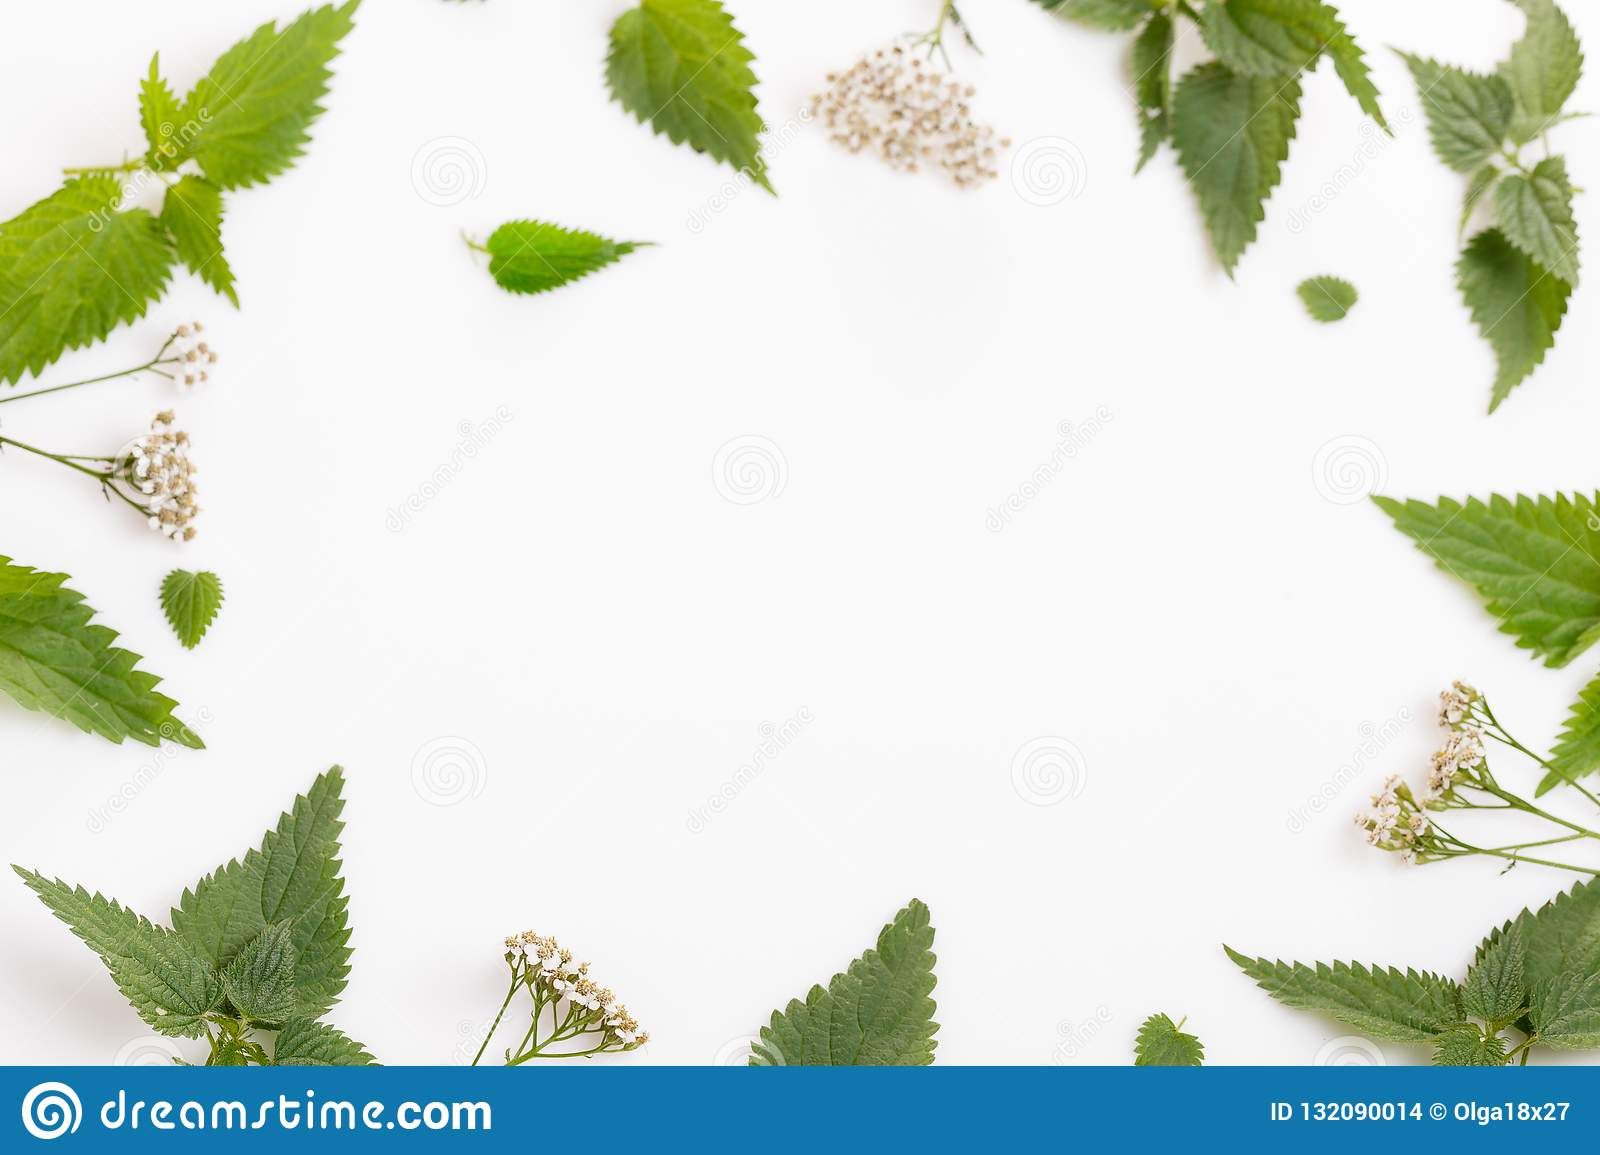 Homeopathy A Homeopathy Concept With Homeopathic Medicine Stock Photo Image Of Healthcare Medicinal 132090014